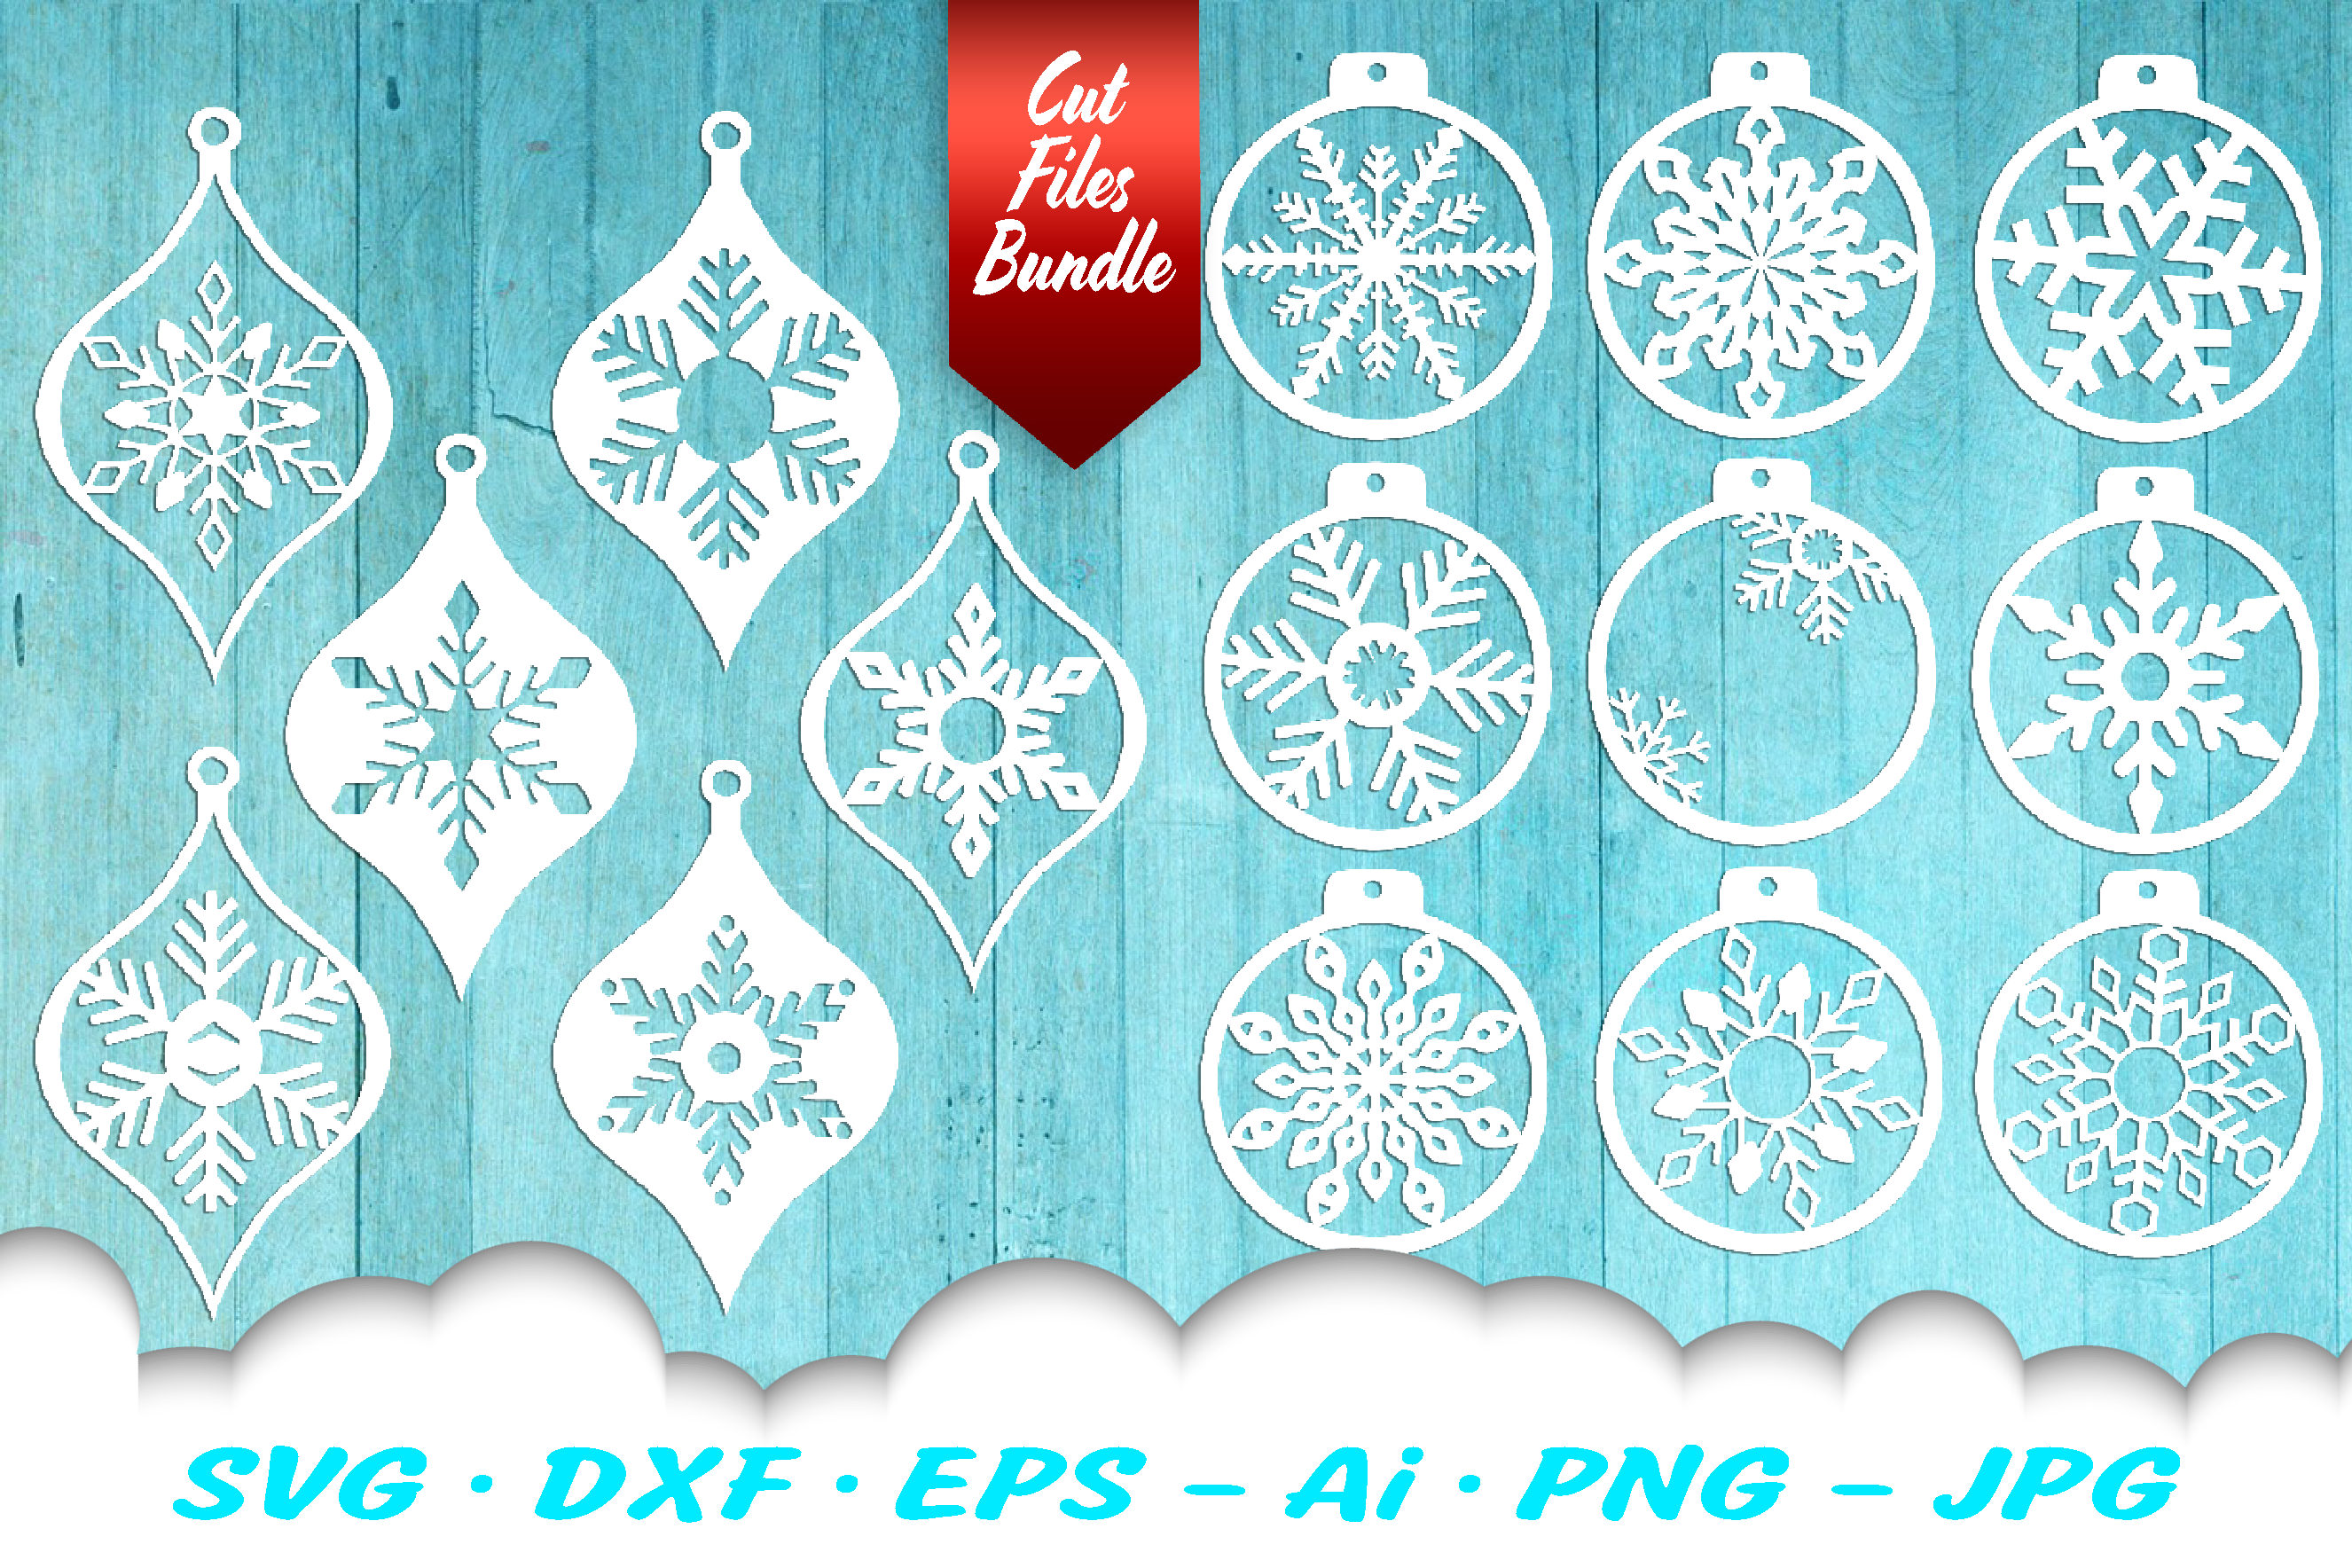 Snowflake Christmas Ornament Earring SVG DXF Cut Files example image 1